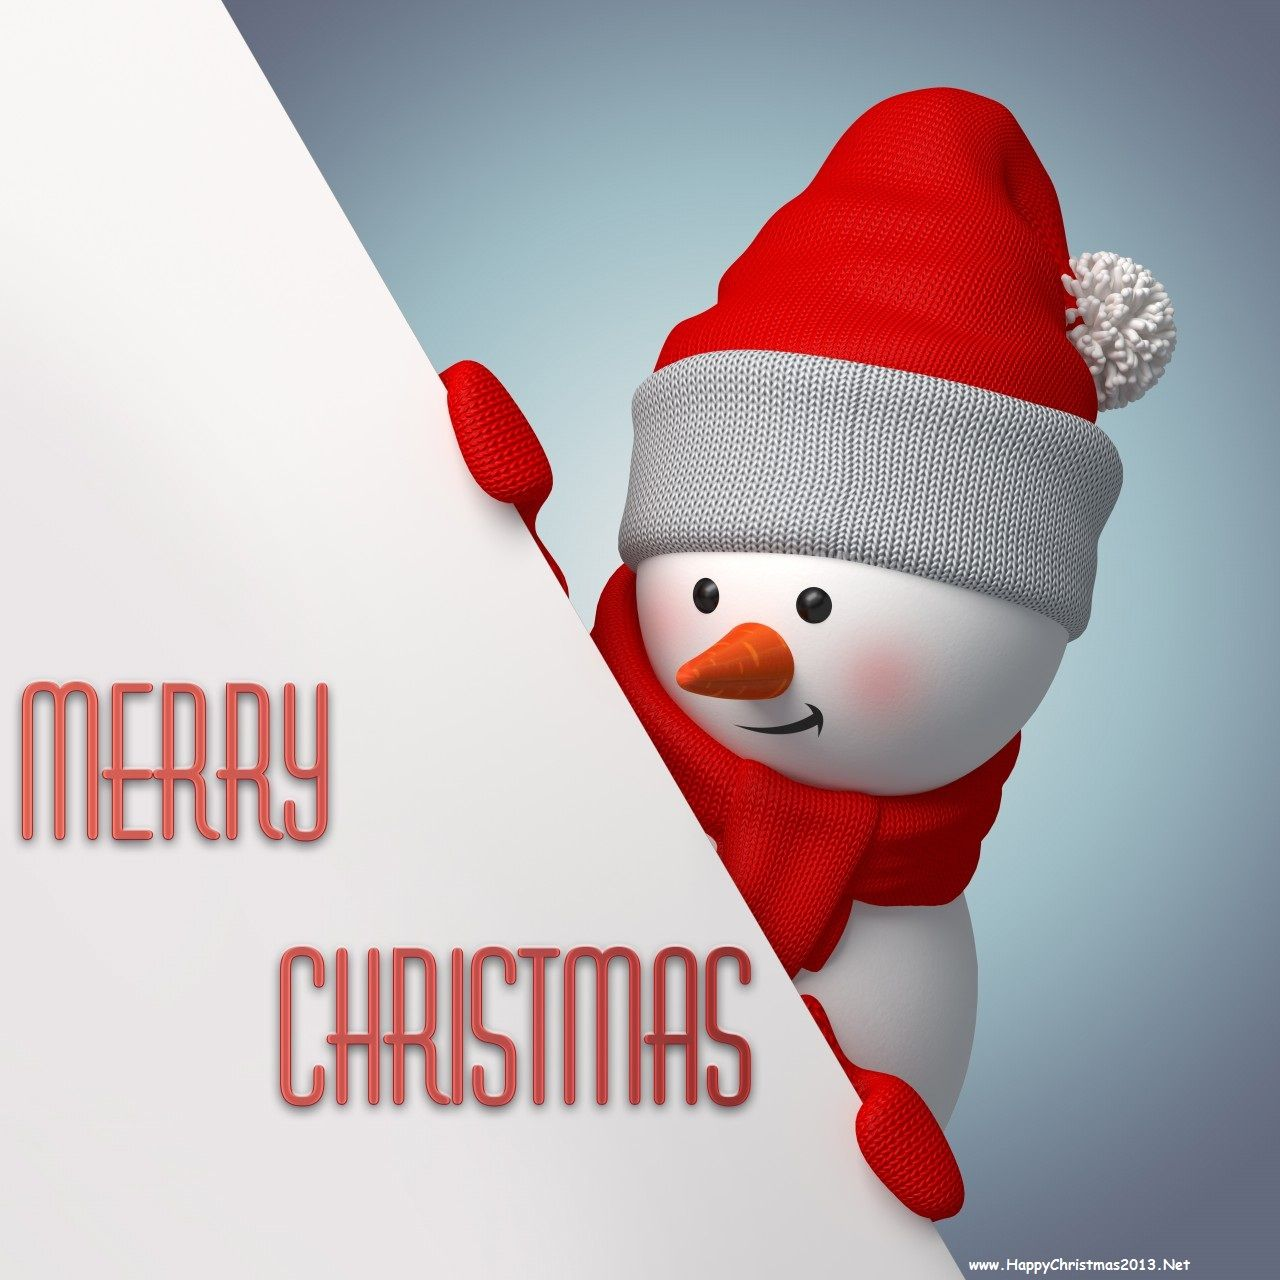 Merry Christmas 2013 Cute Snowman Wallpapers and Banners